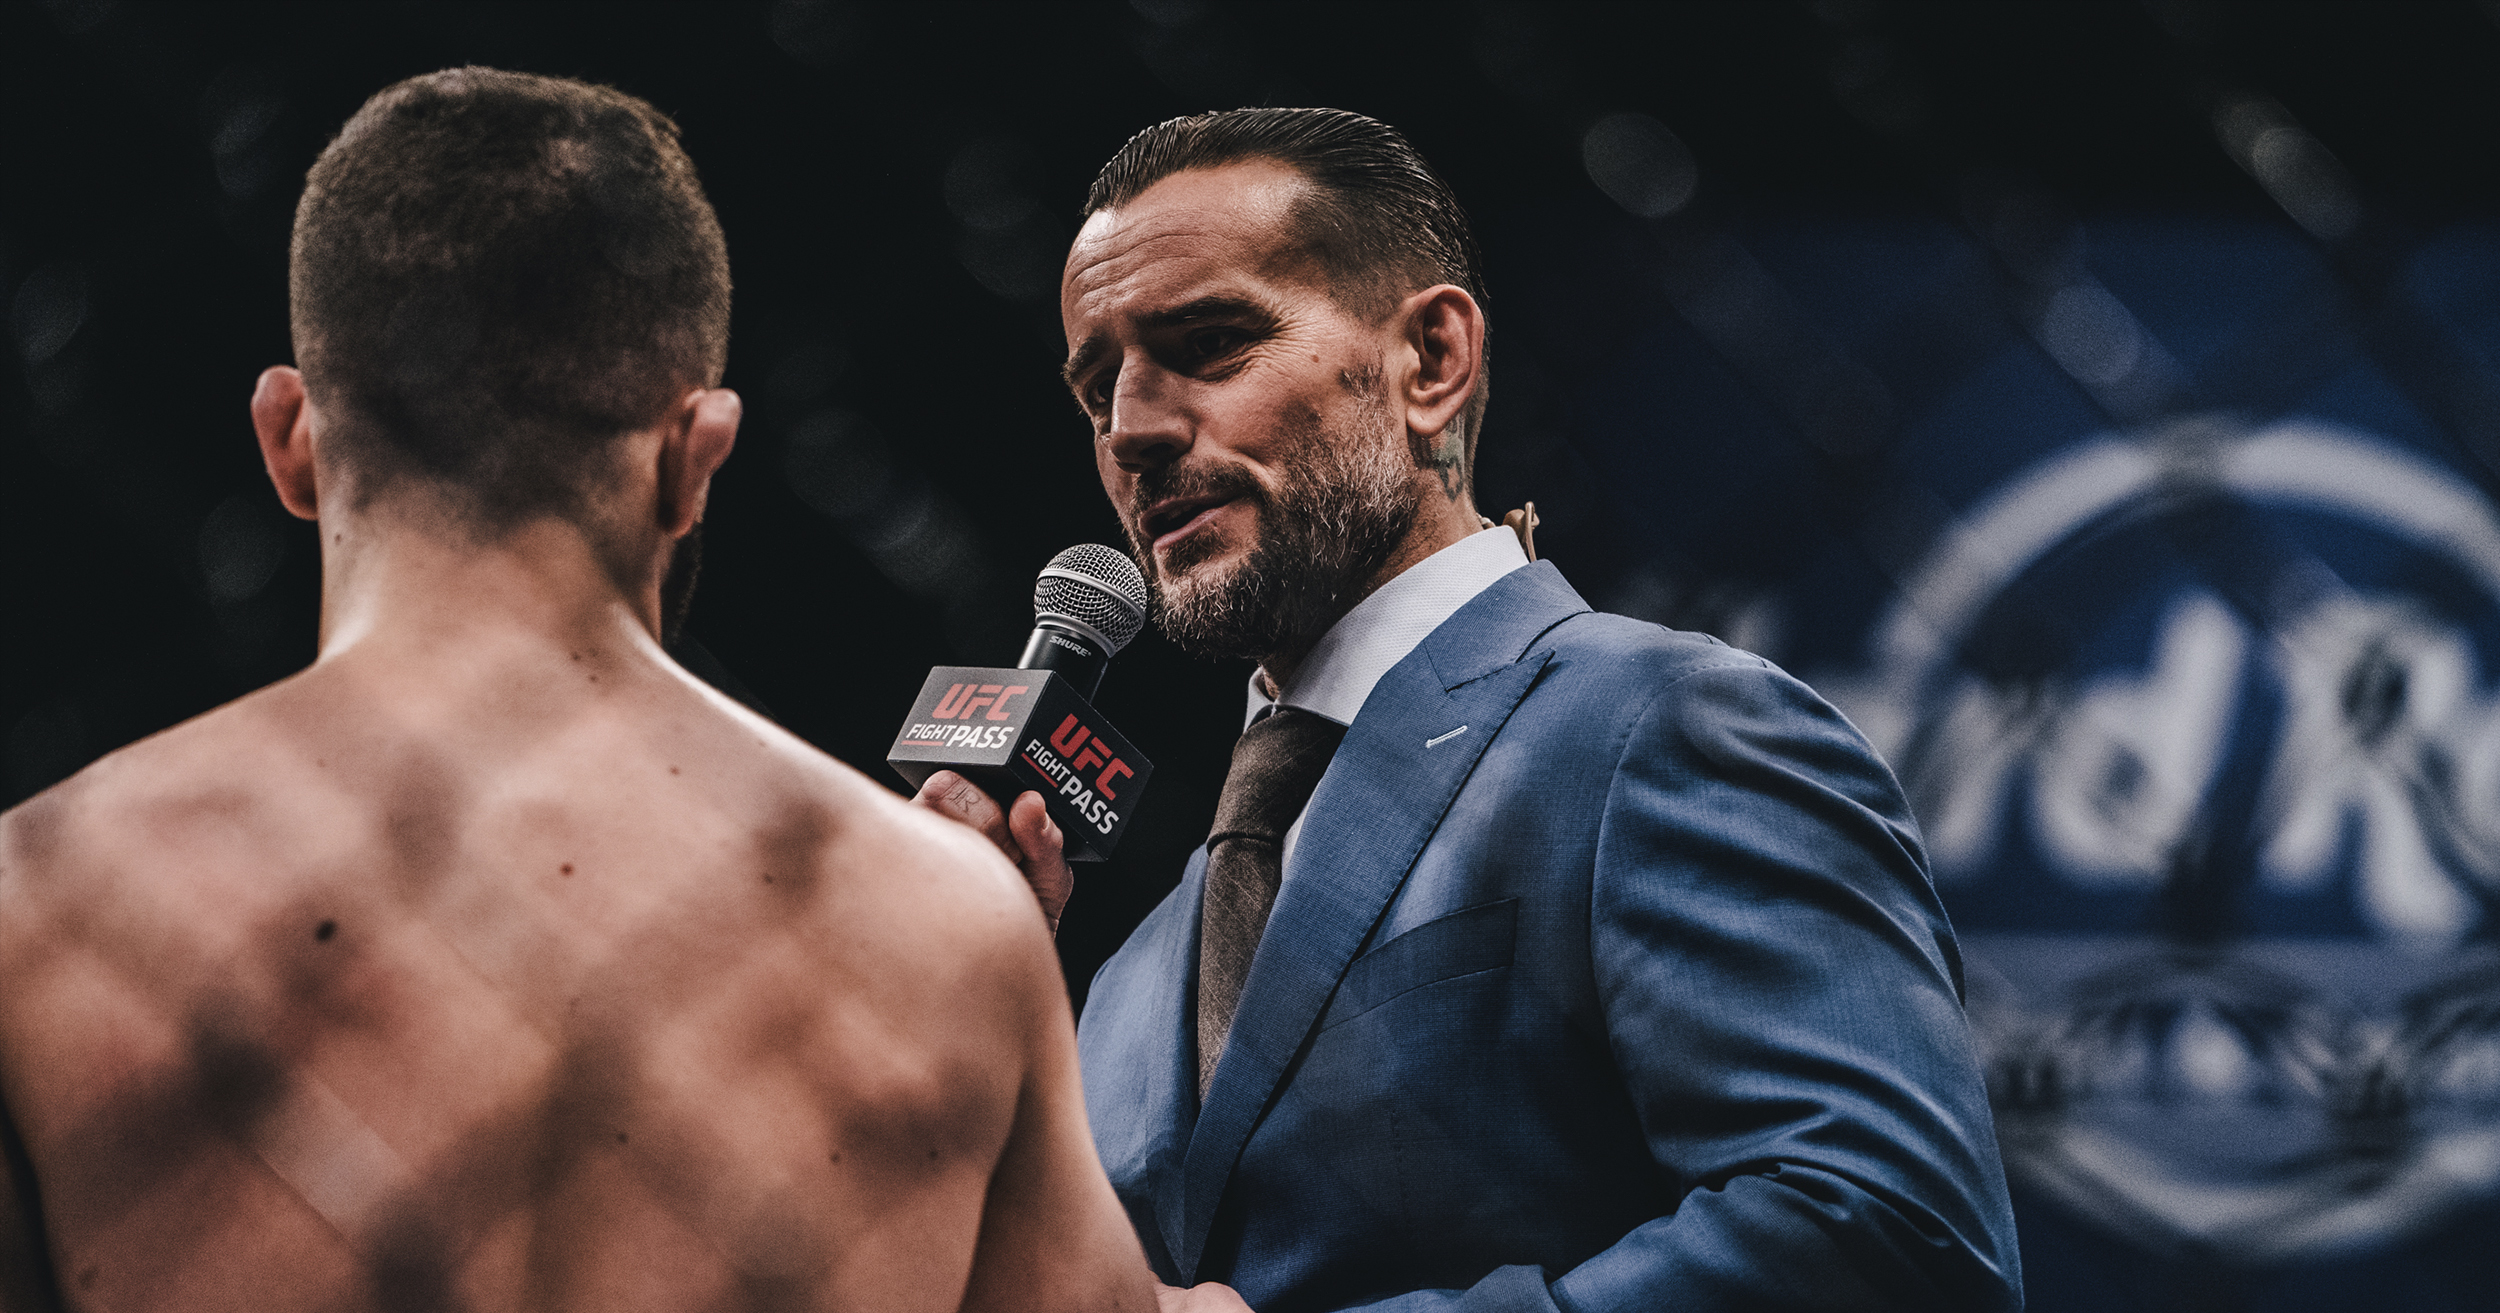 International star CM Punk calling the action as a CFFC broadcaster